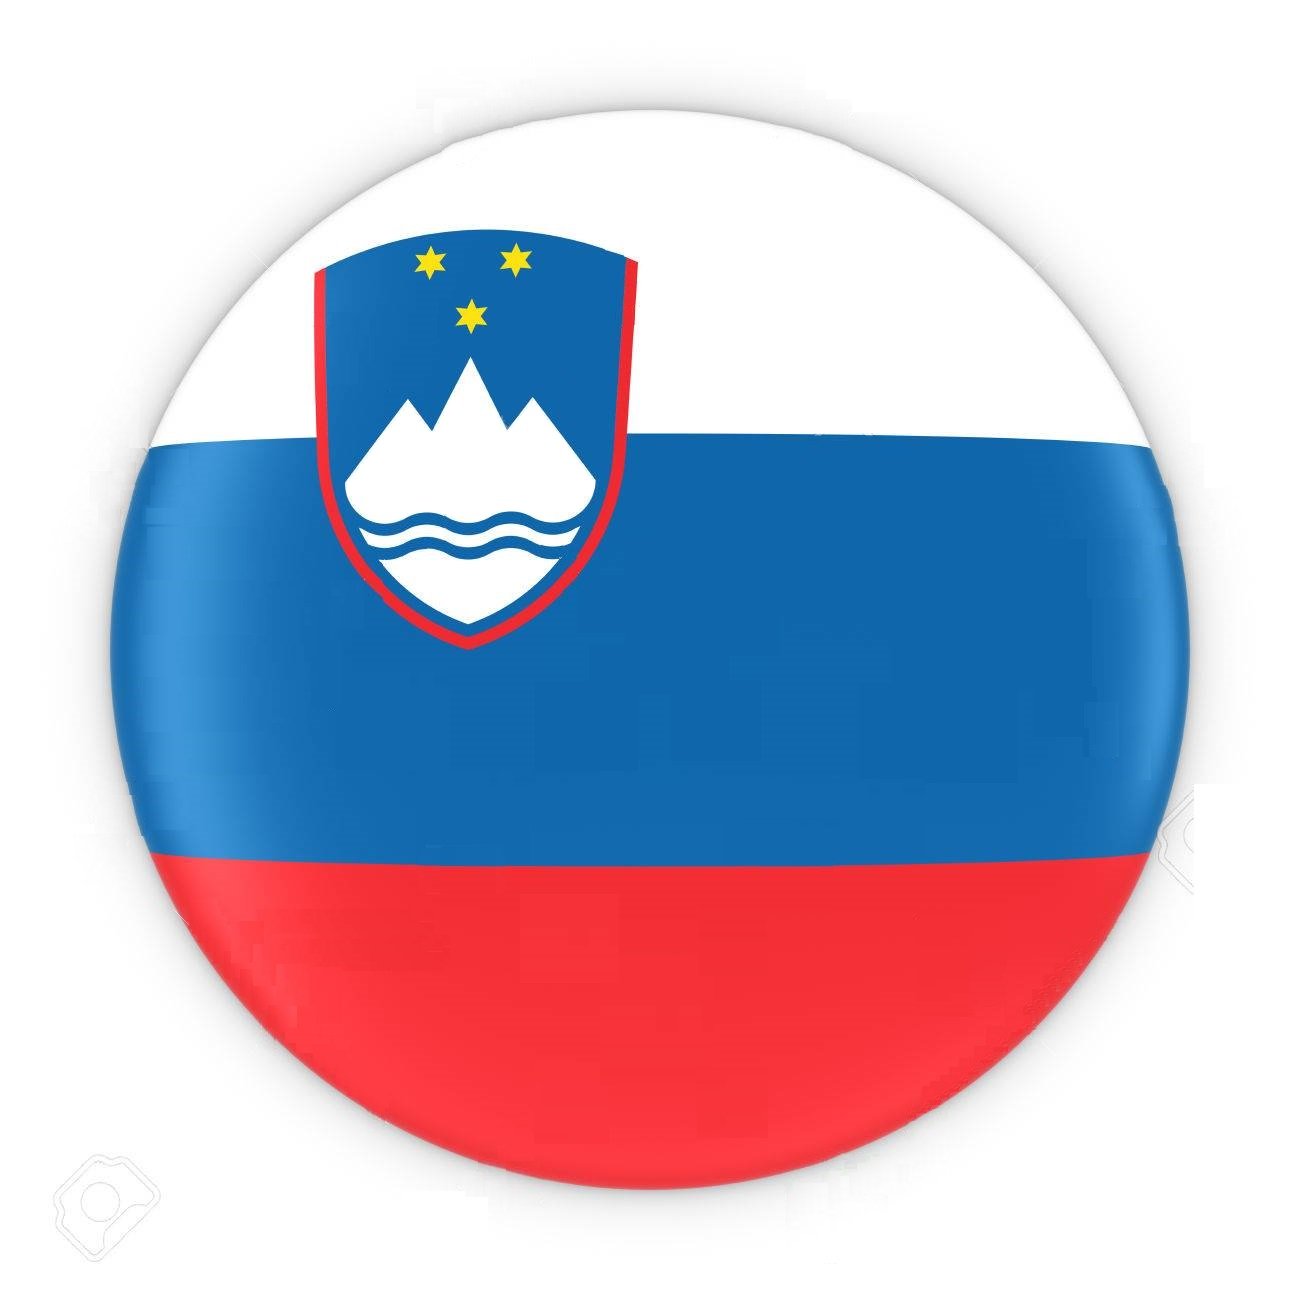 Slovenian Flag Button - Flag of Slovenia Badge 3D Illustration